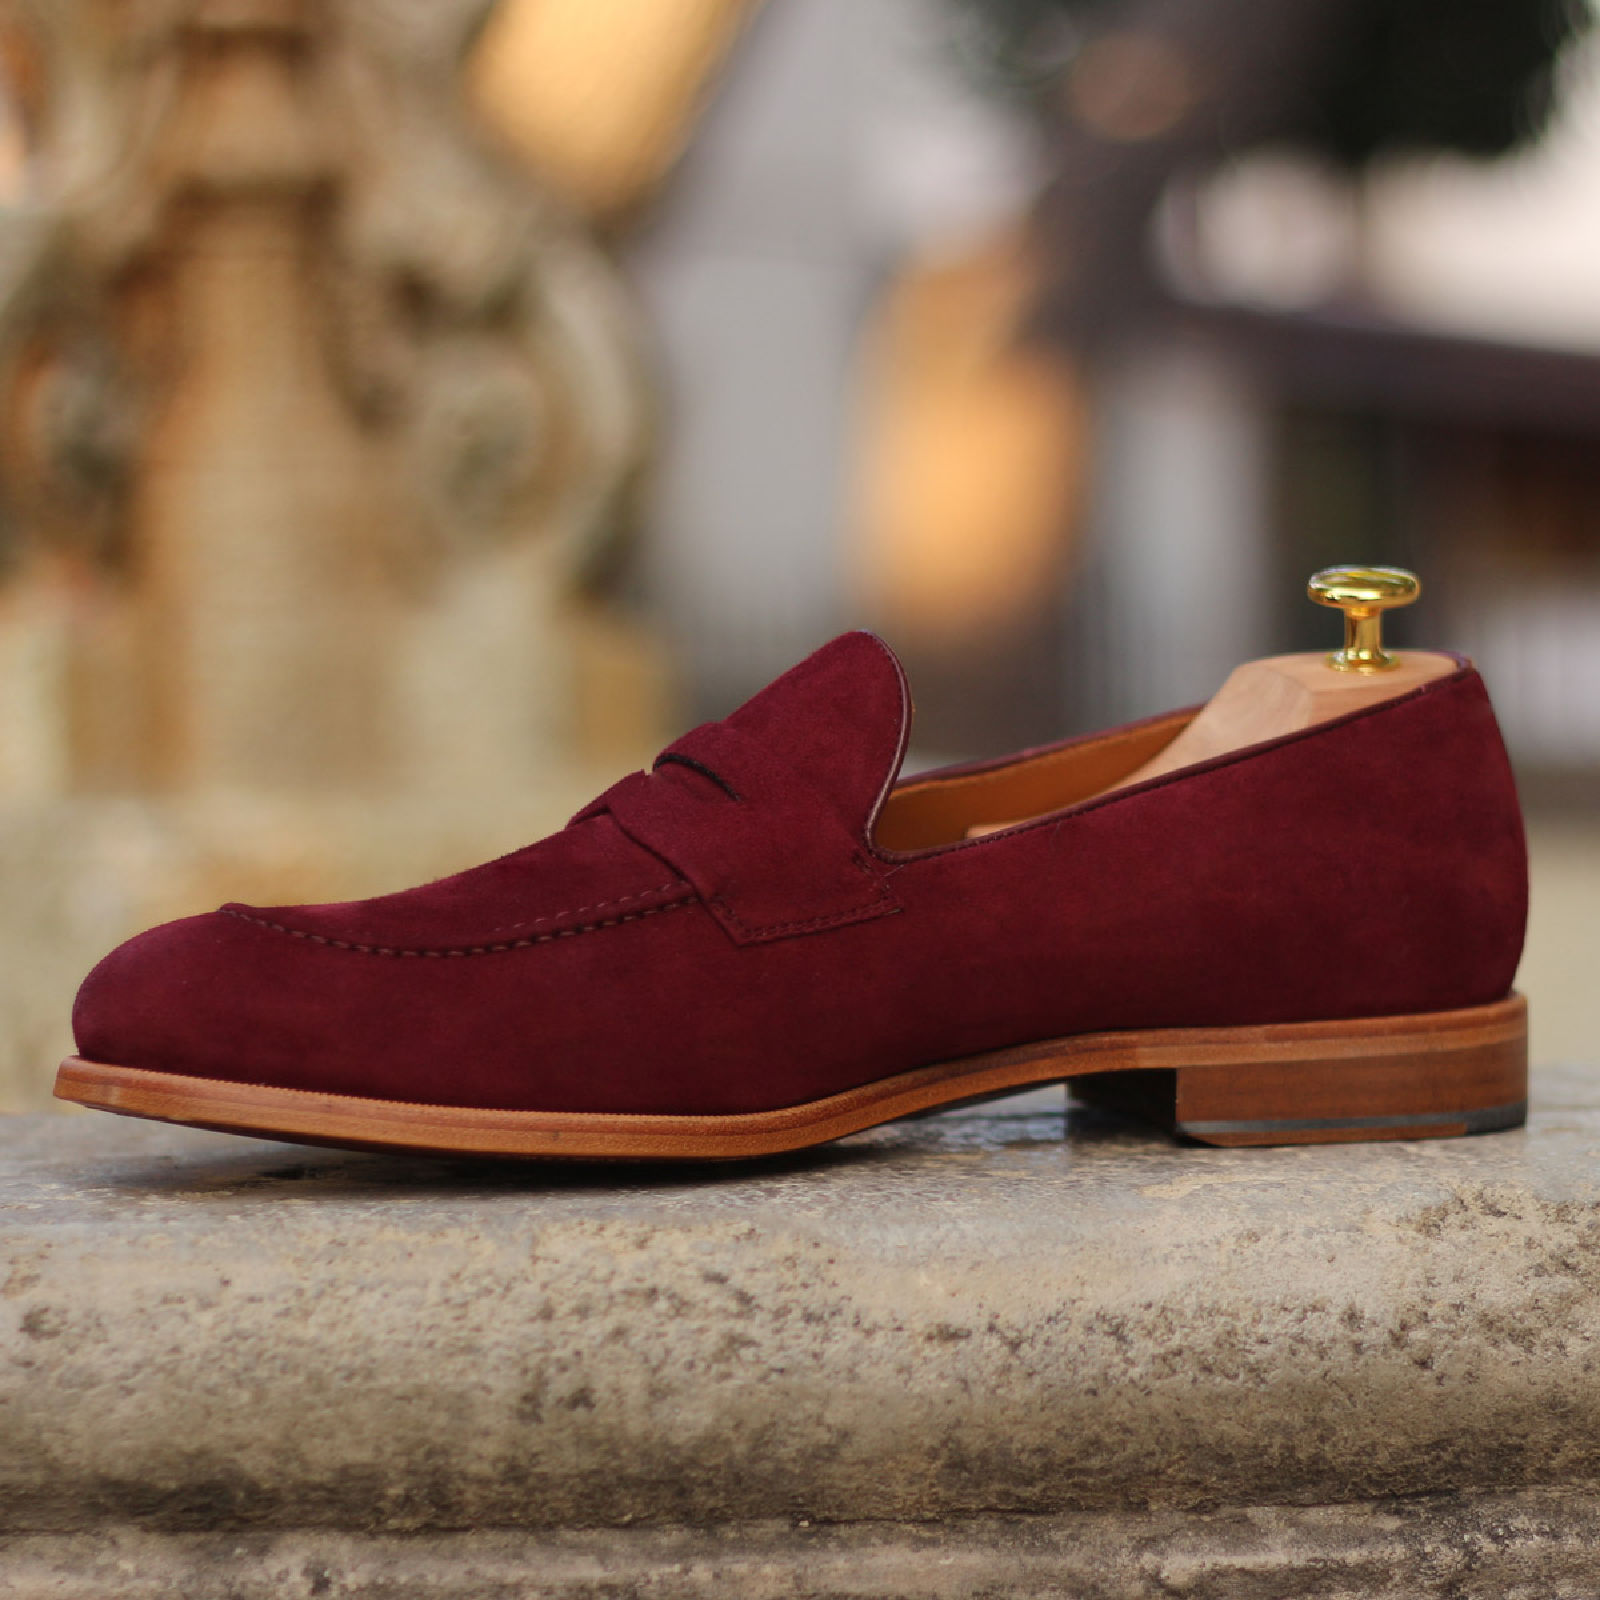 Loafer burgundy box calf + wine kid suede : 240€